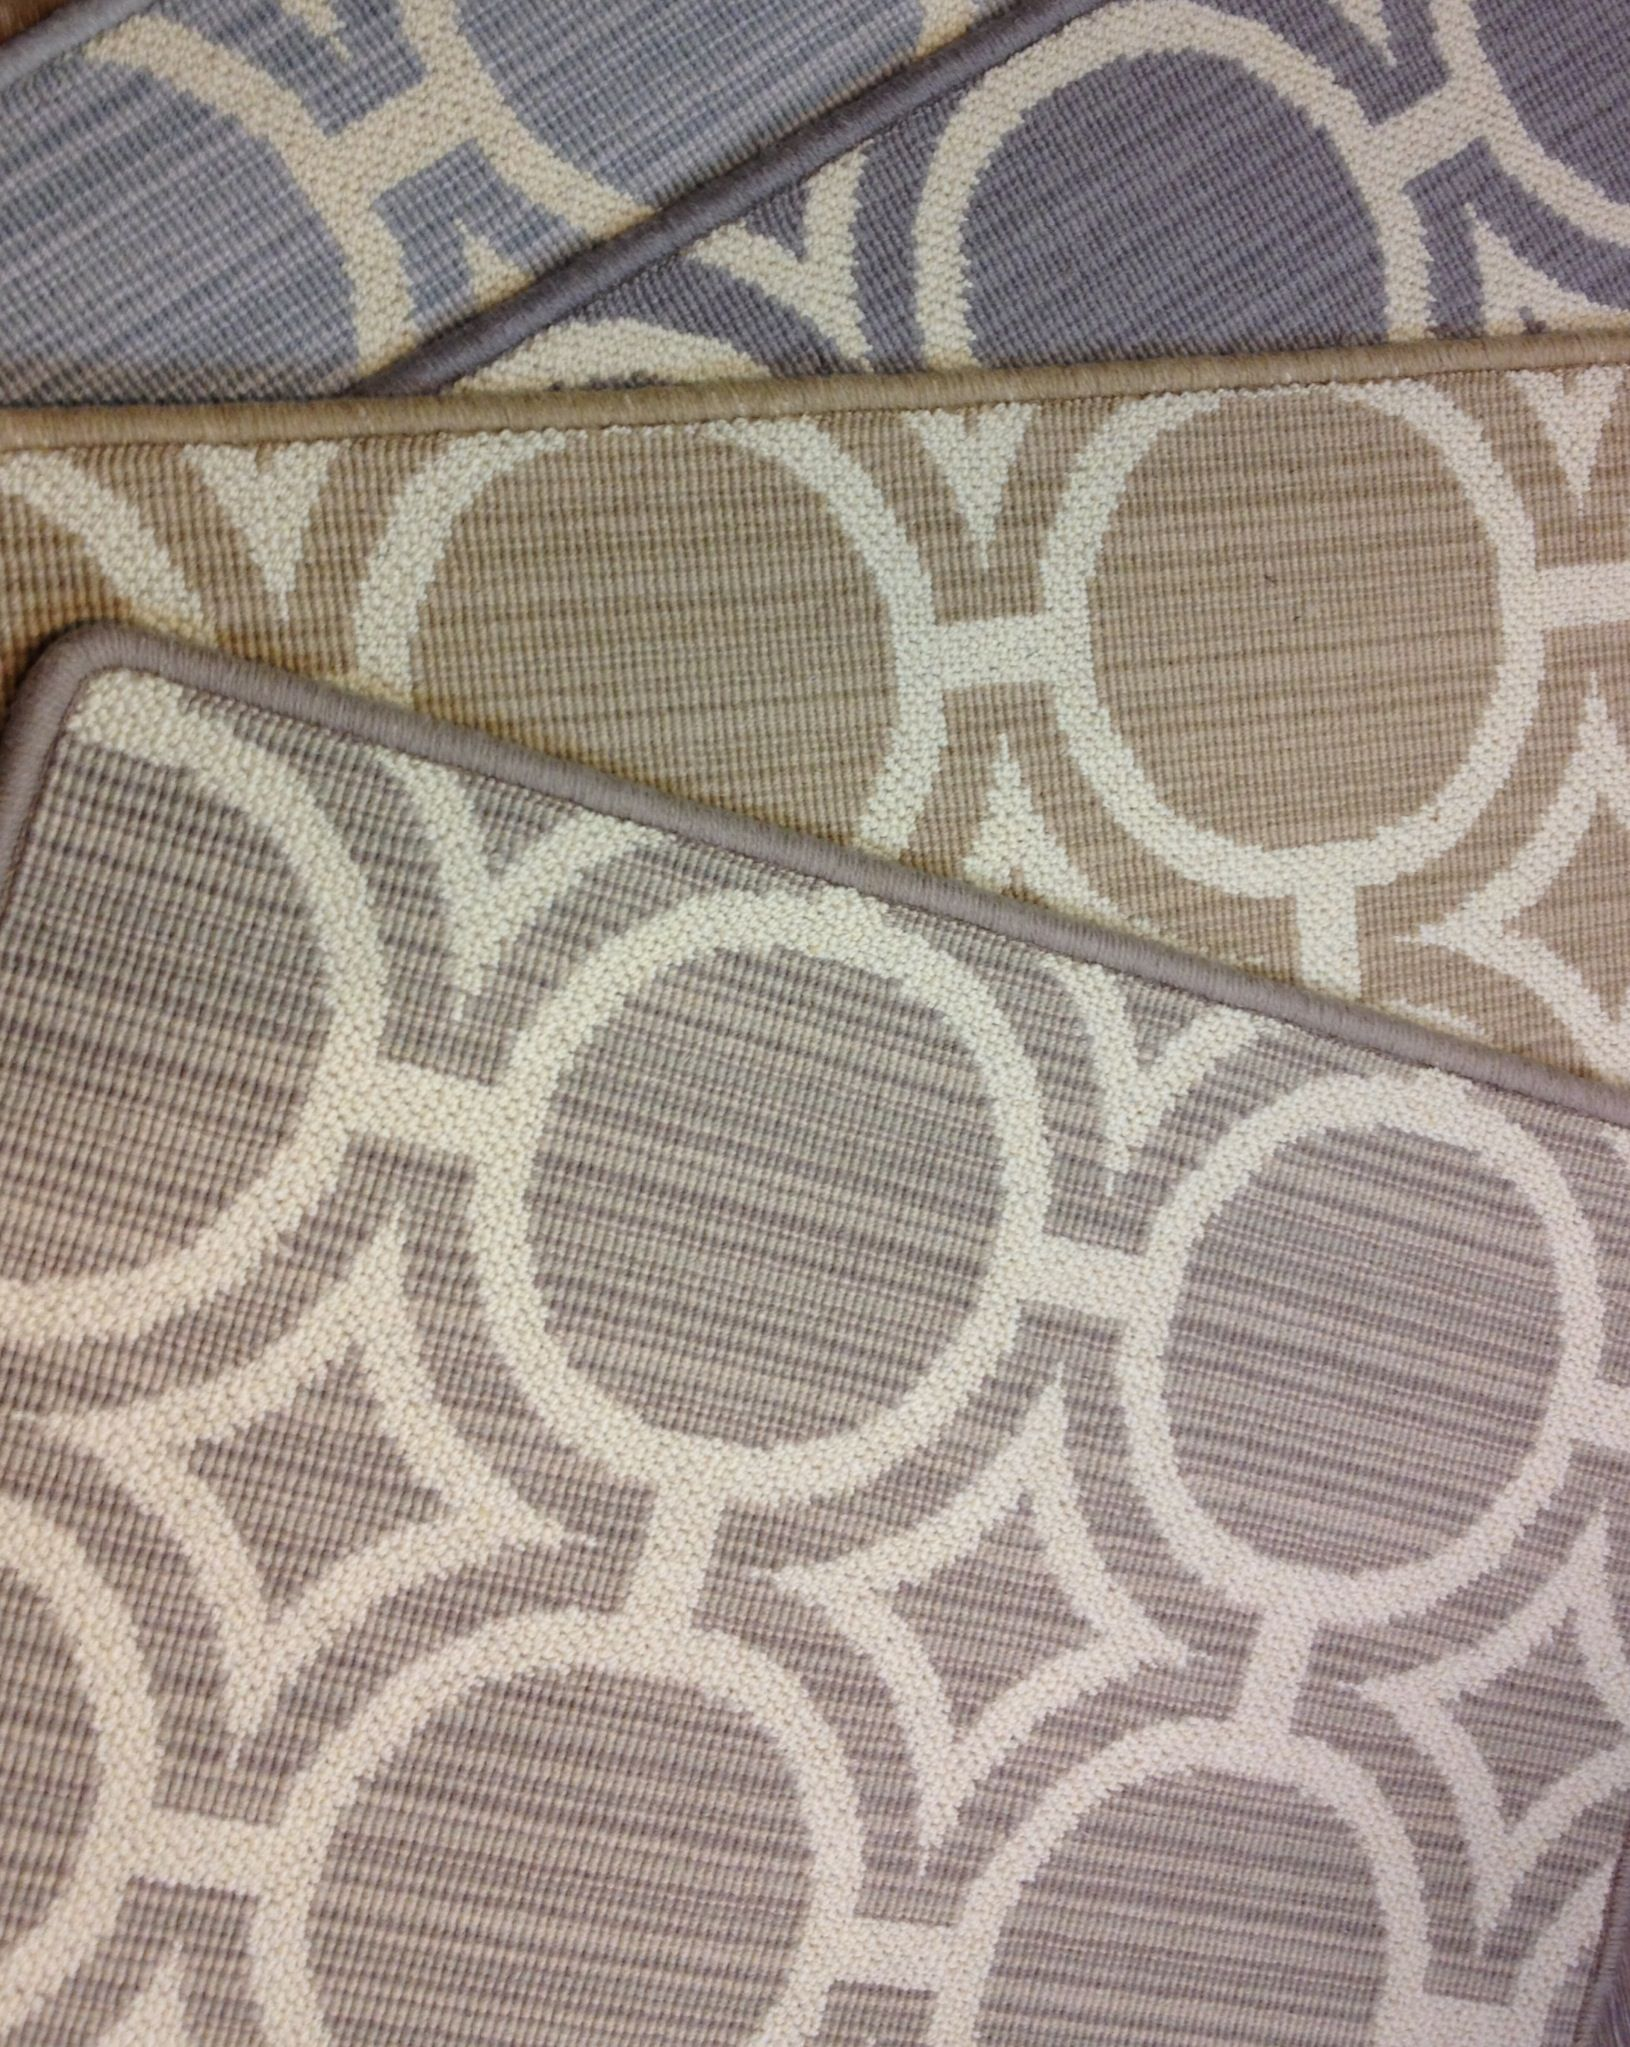 Patterned Carpet Kensington Is A Is A Great Patterned Carpet That Features Circles